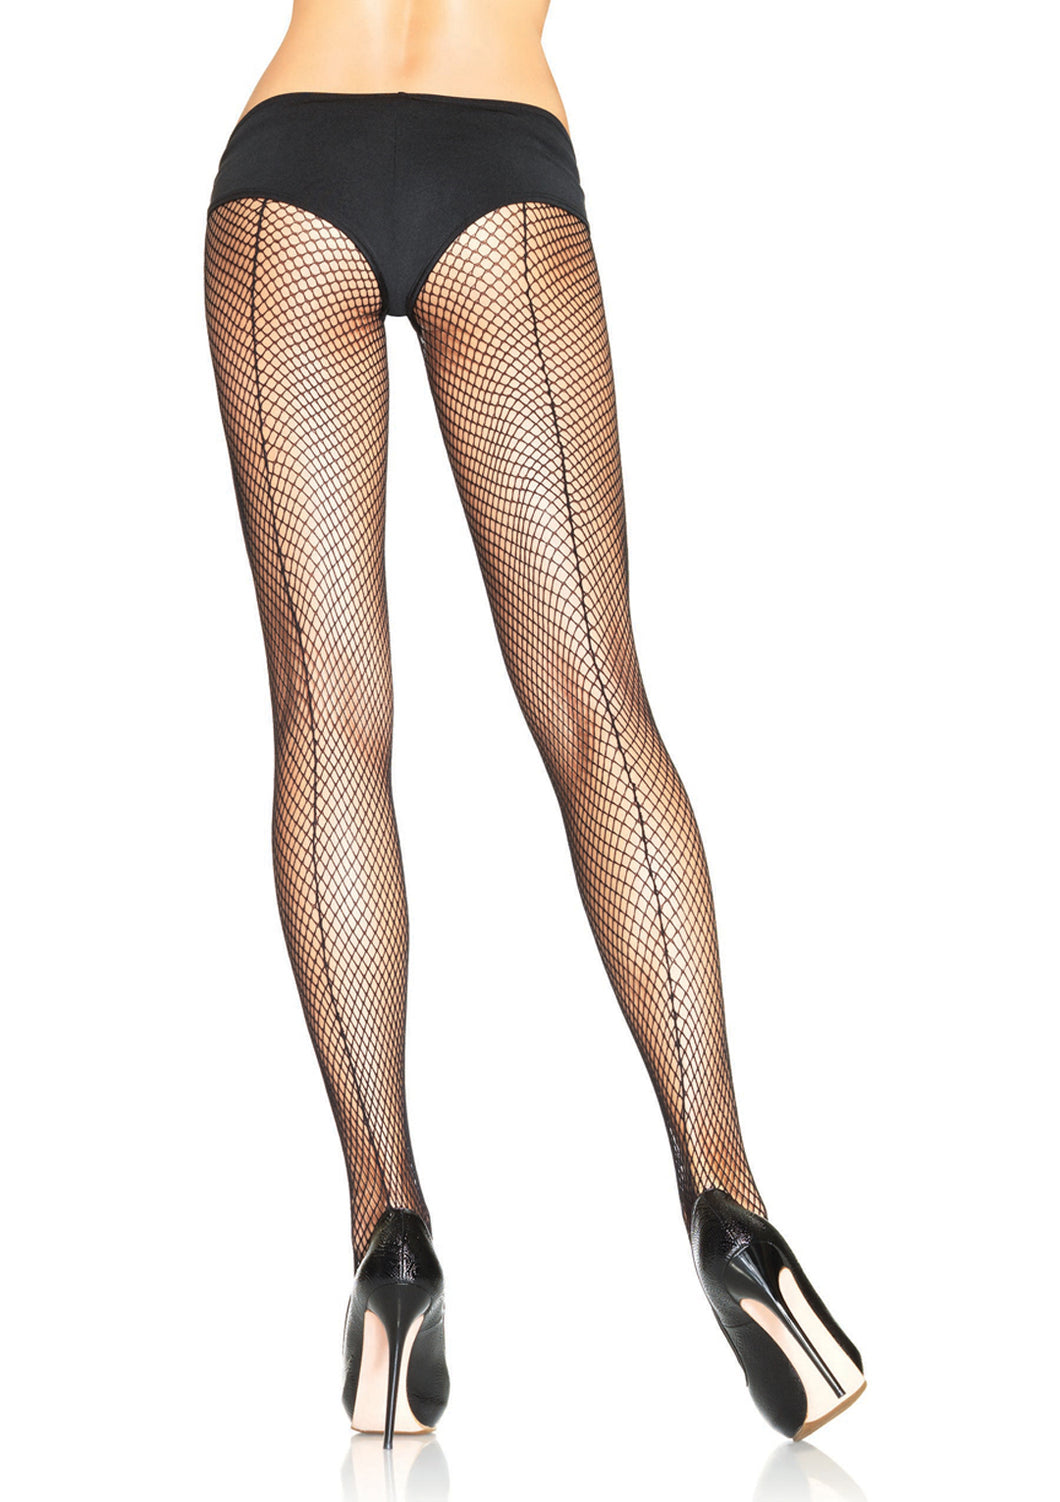 Leg Avenue Plus Size Backseam Fishnet Pantyhose